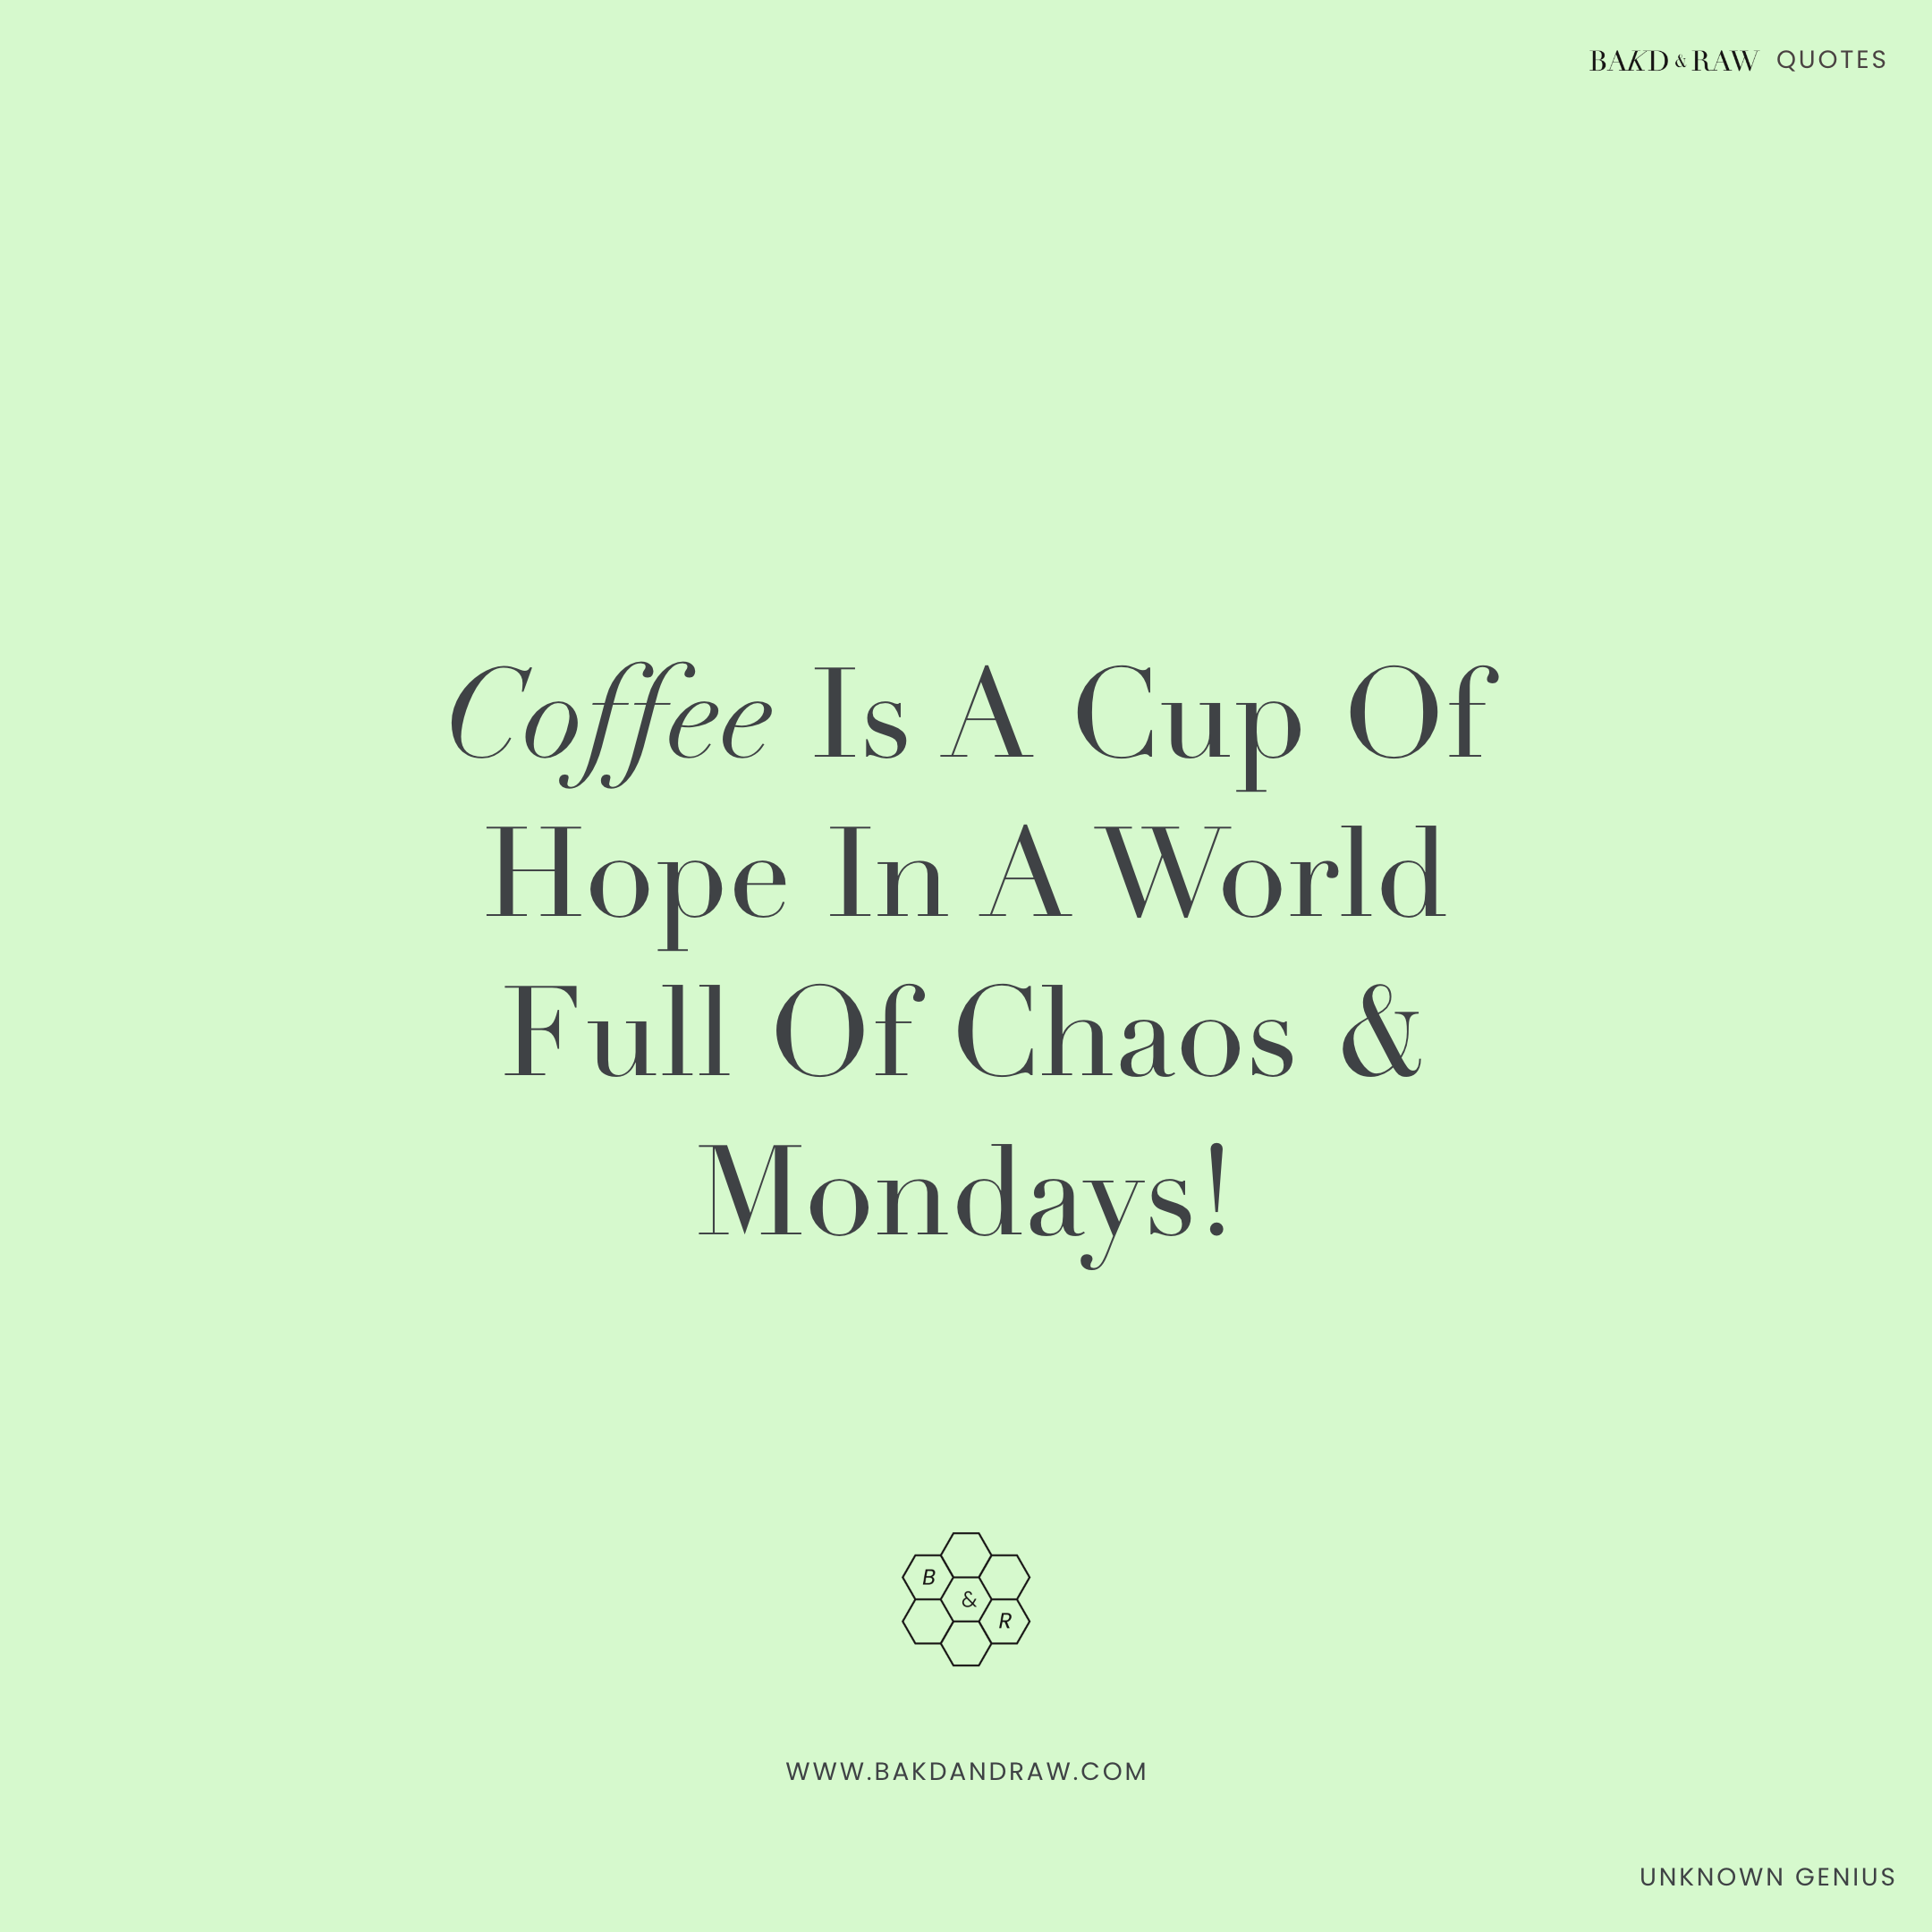 Coffee is a cup of hope, Bakd&Raw Food Quotes by Karolin Baitinger